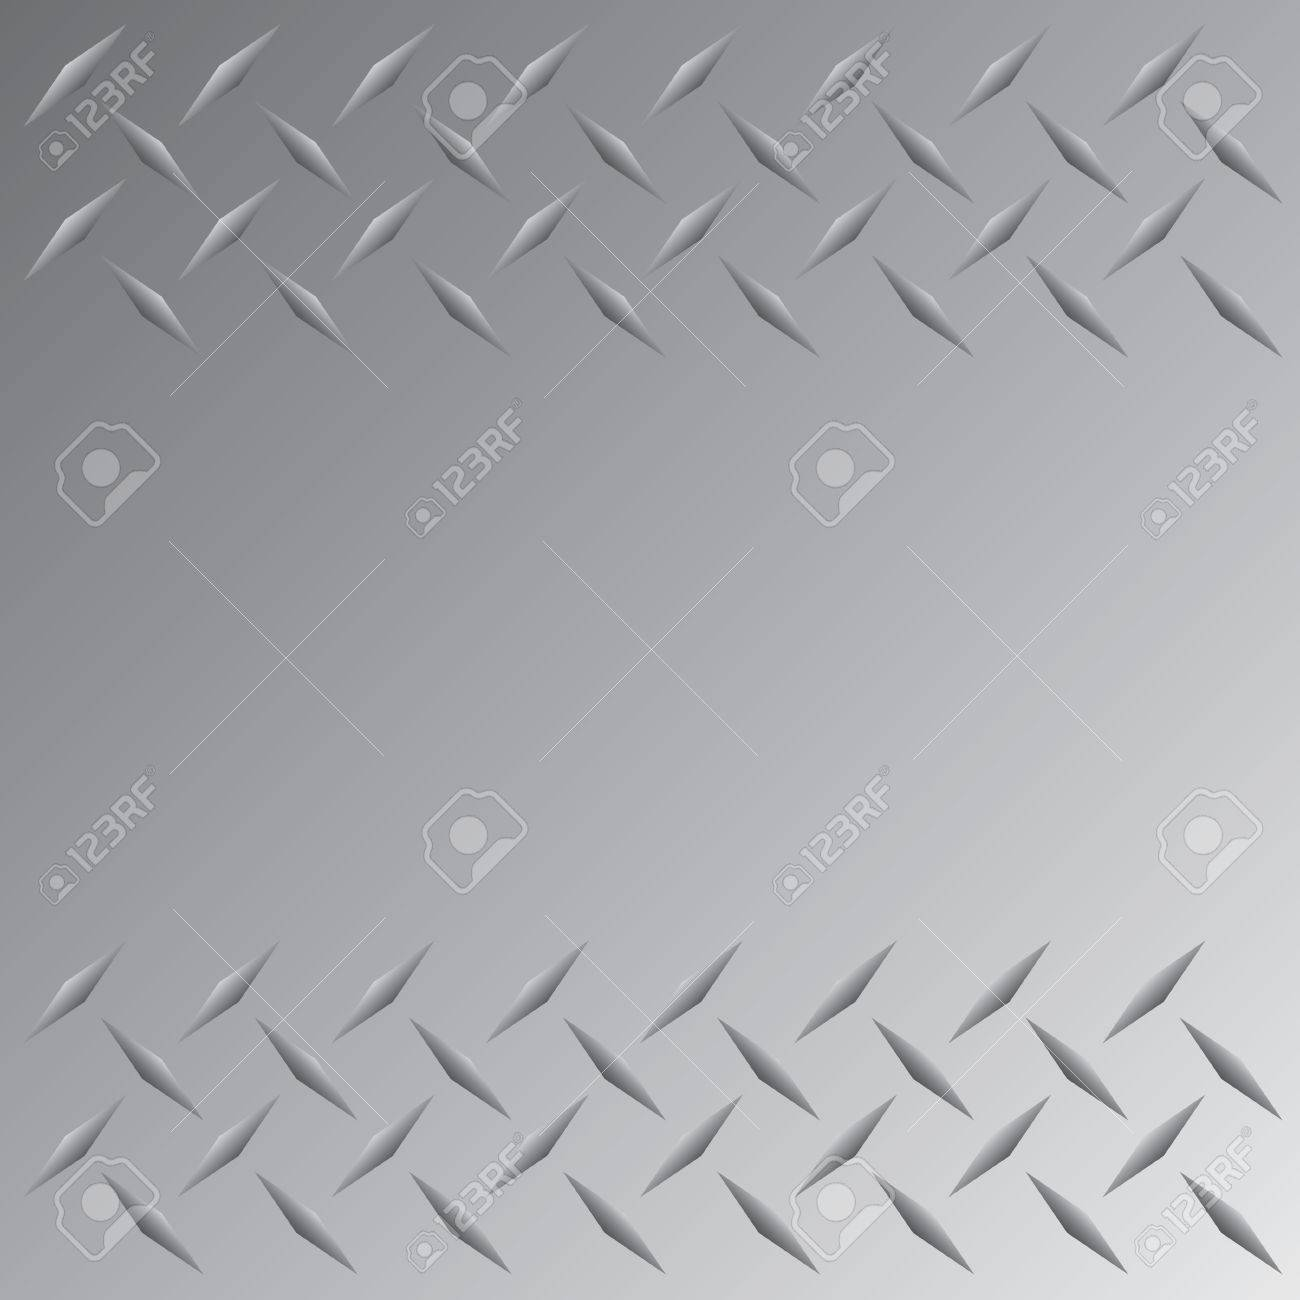 A silver colored diamond plate layout that tiles seamlessly in any direction.  This vector image is easily customized to any other style. Stock Vector - 4301715